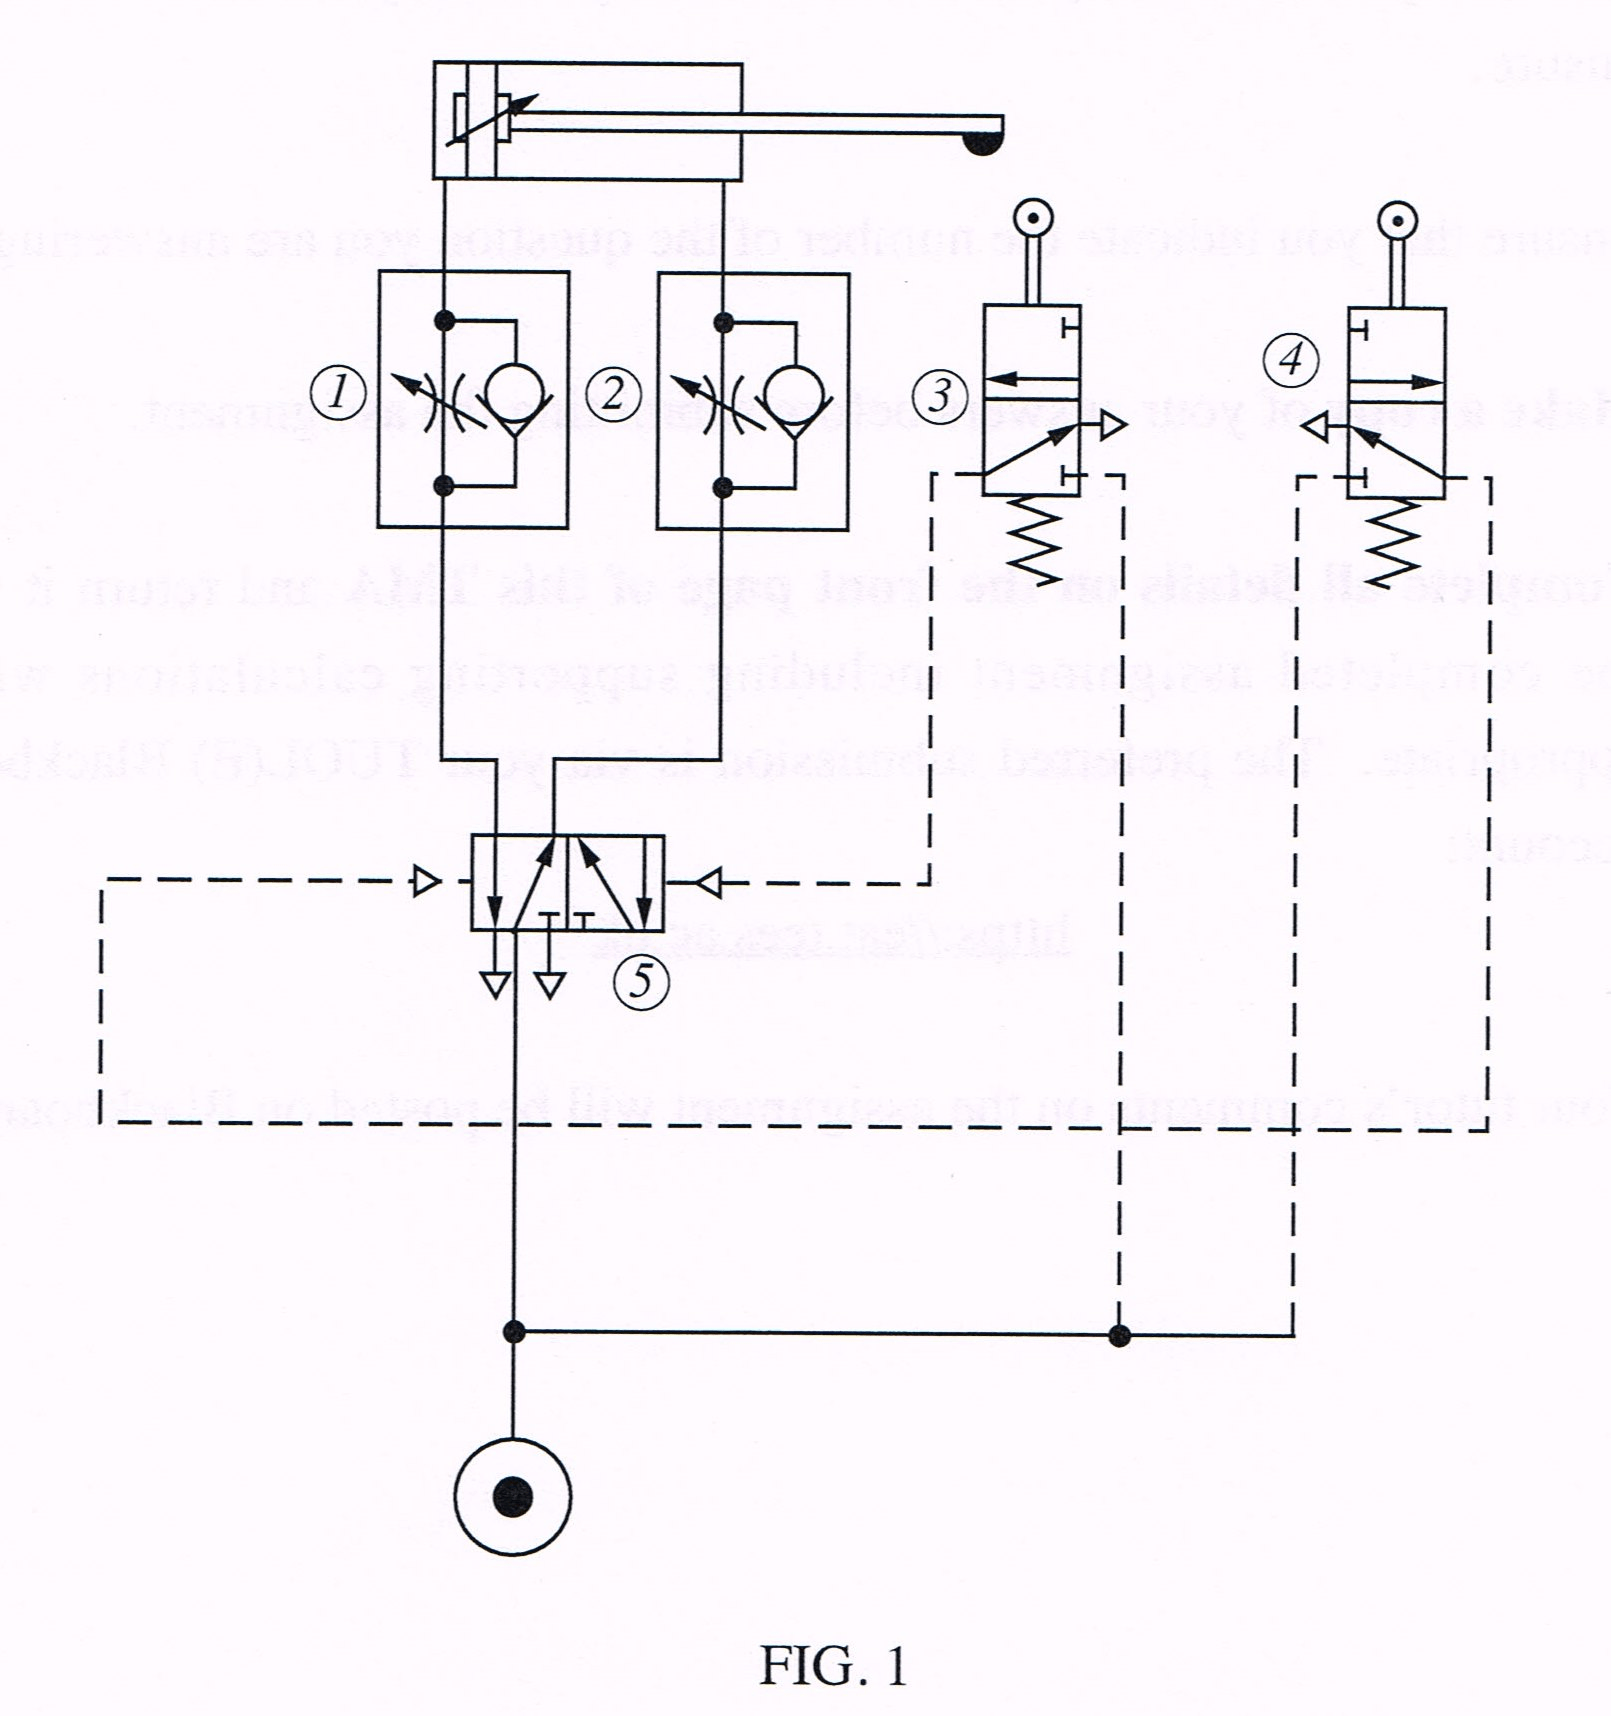 4 Way Ball Valve Schematic